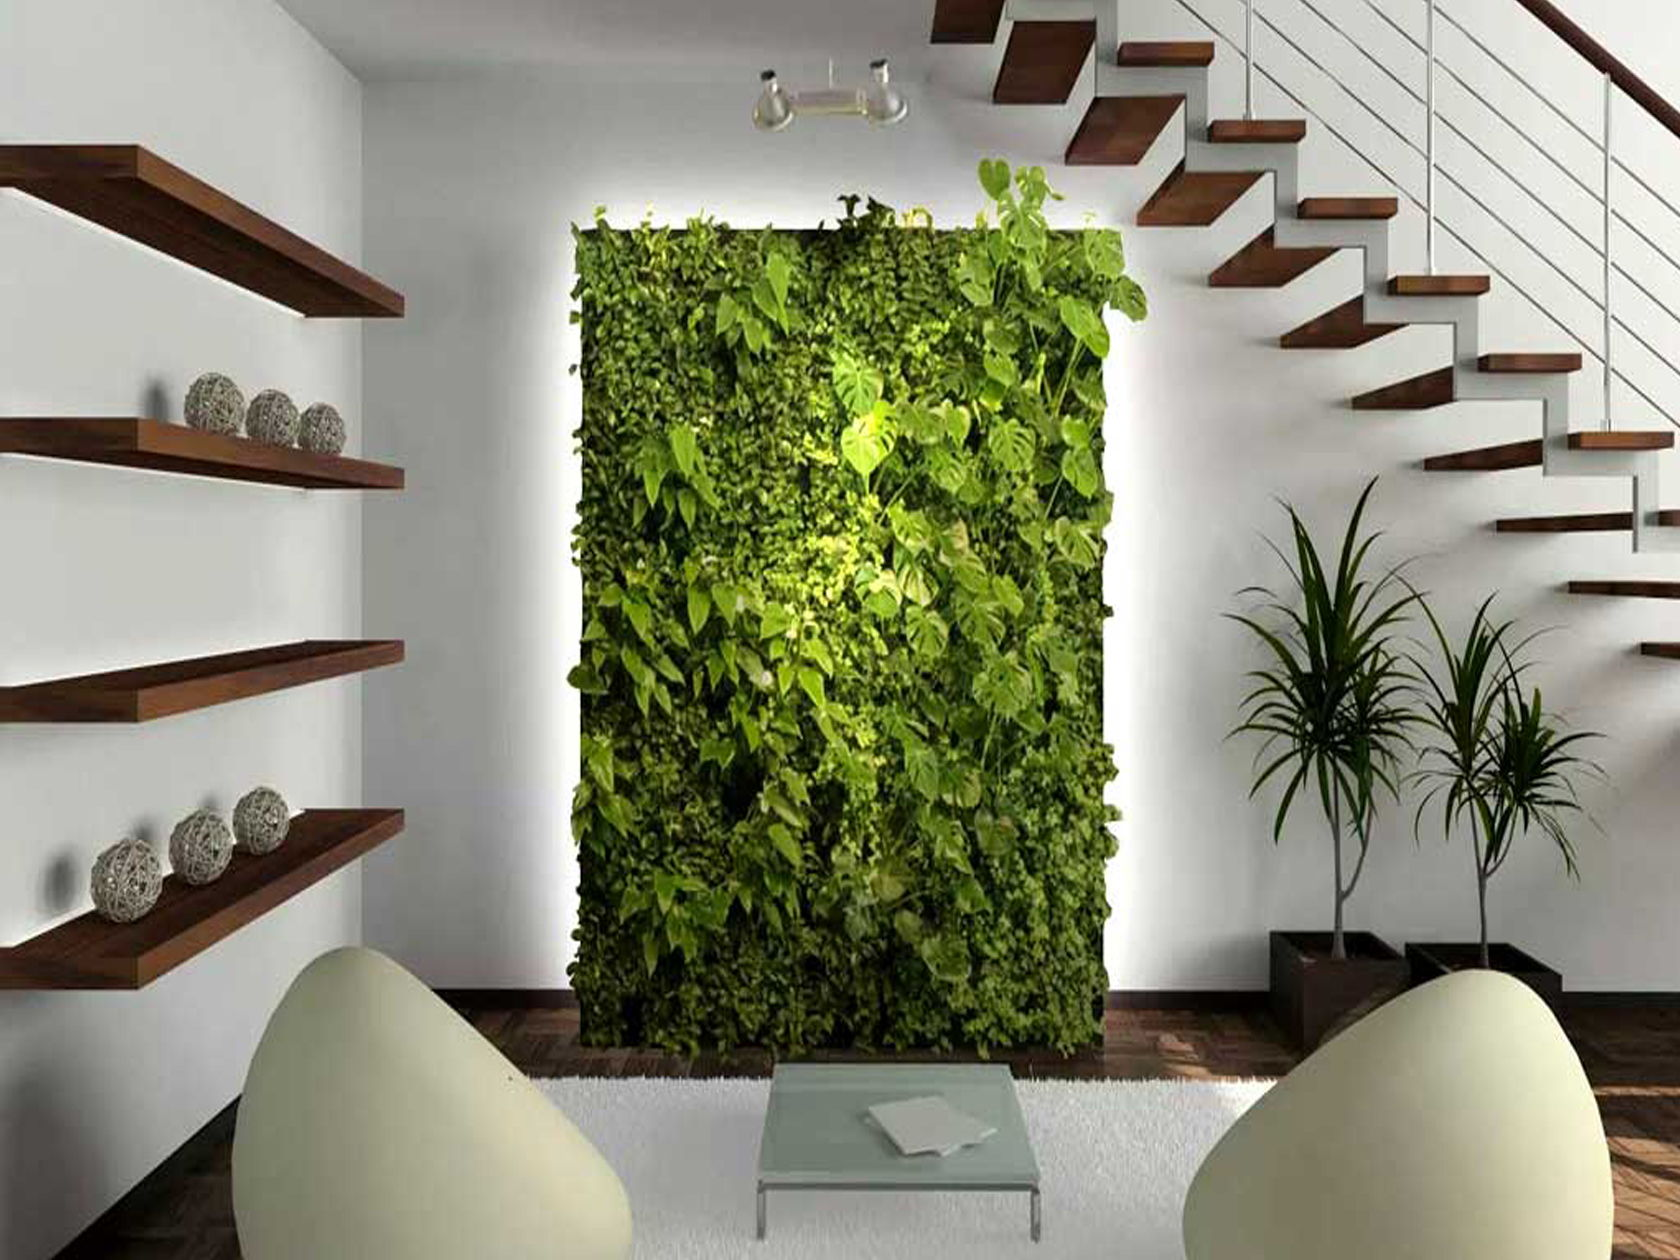 dumb cane home wall